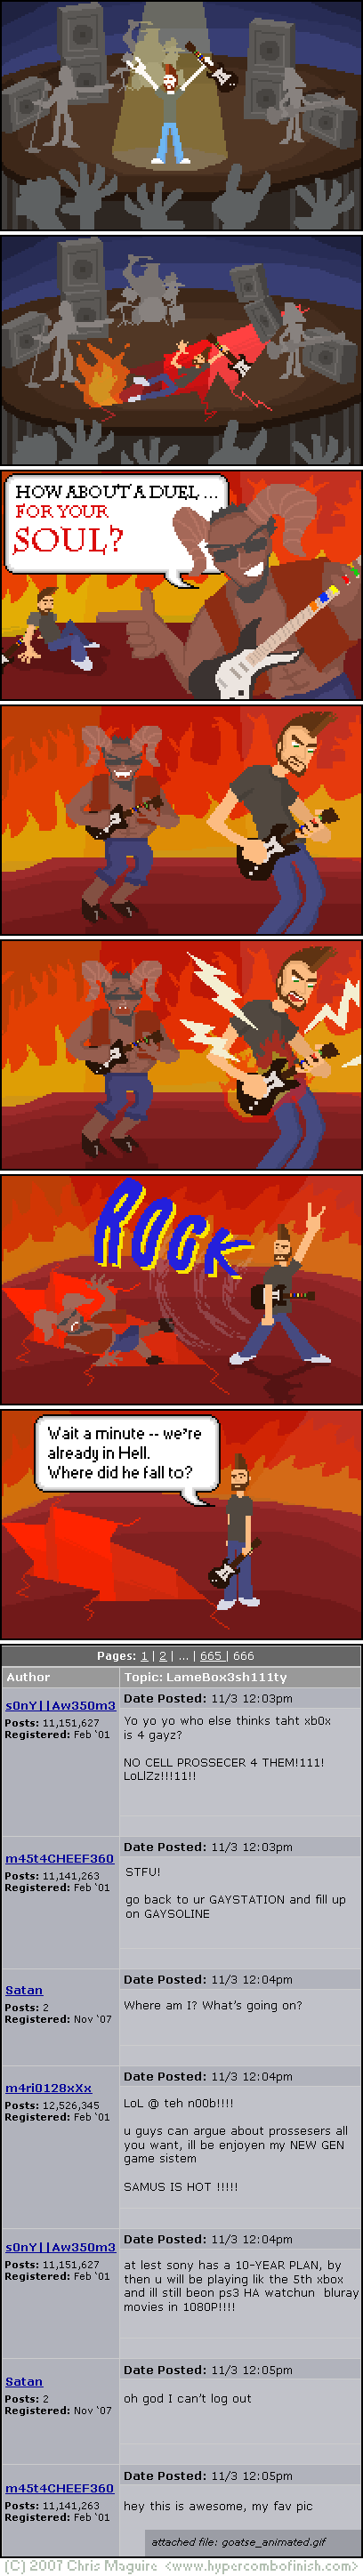 Hypercombofinish Comic #39 by Chris Maguire